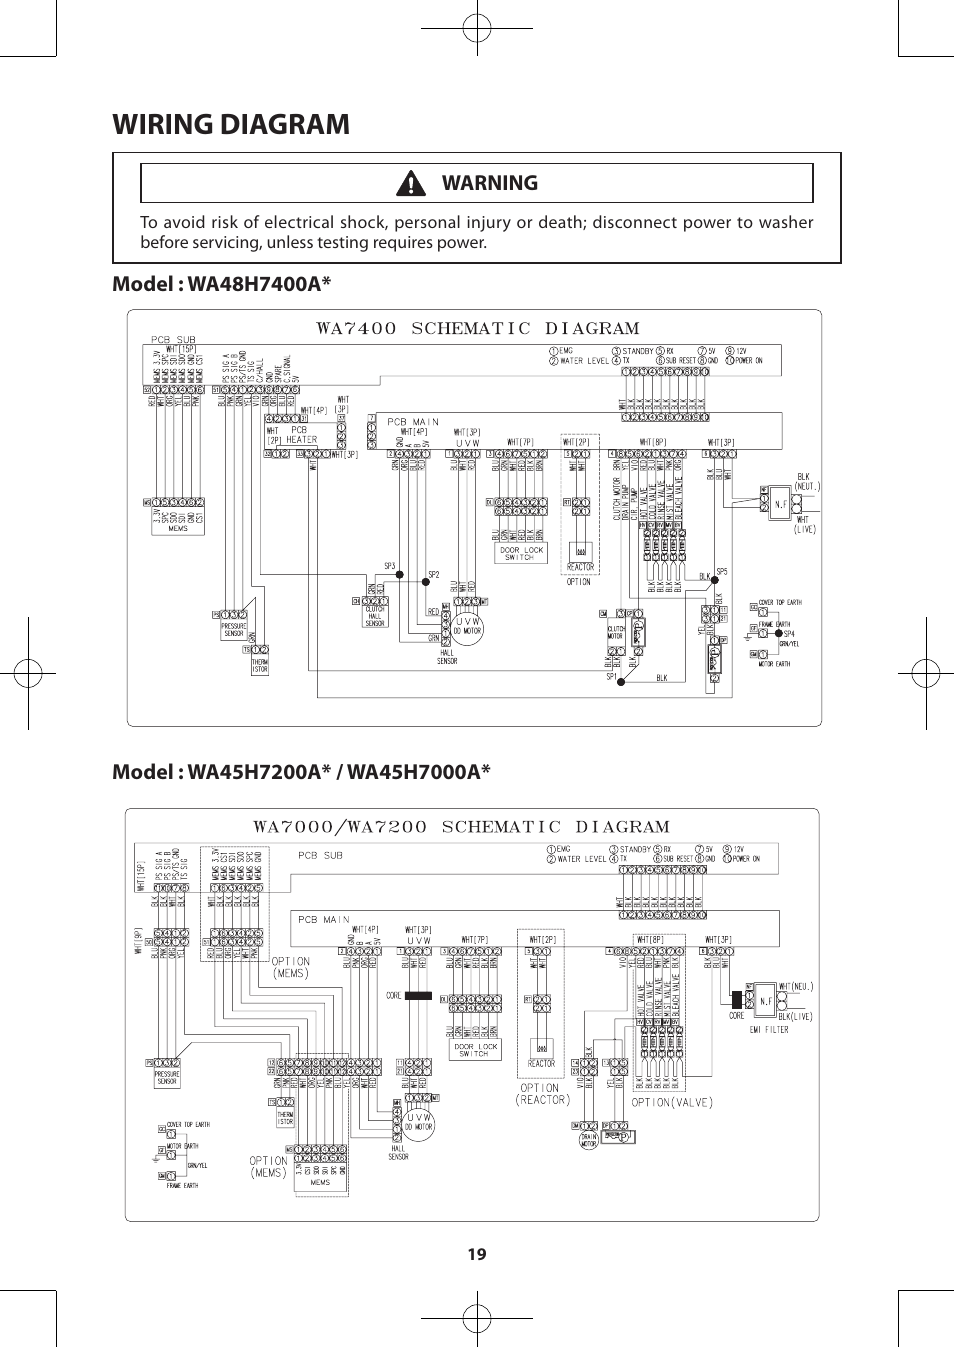 groundcar wiring diagram page 4 2014 maycar wiring diagram page 60